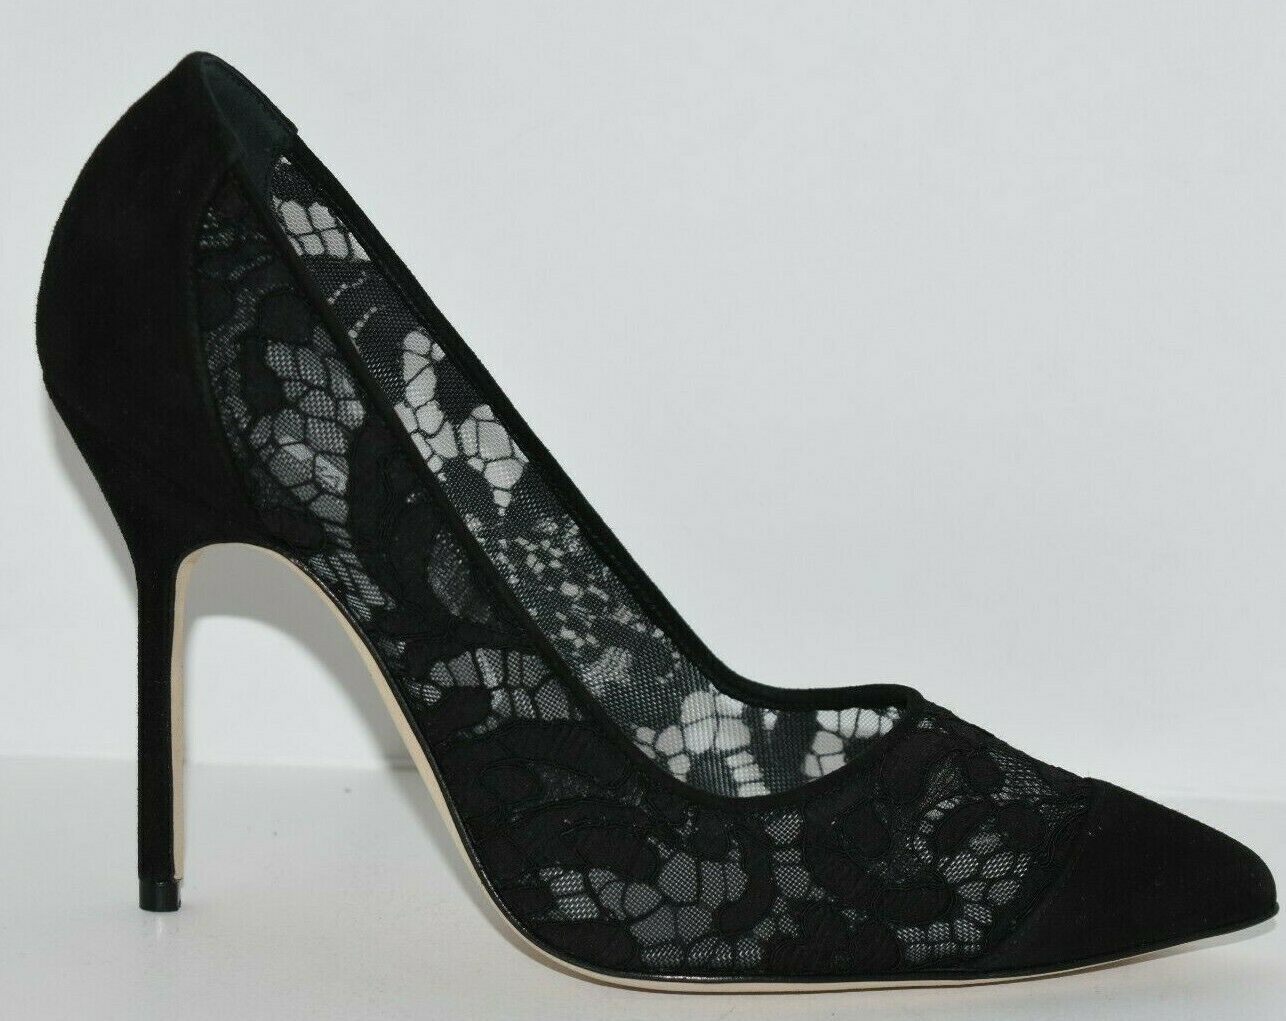 745 NEW Manolo Blahnik SALOLA BB Lace Suede Pump Black shoes 35 35.5 37 38.5 39